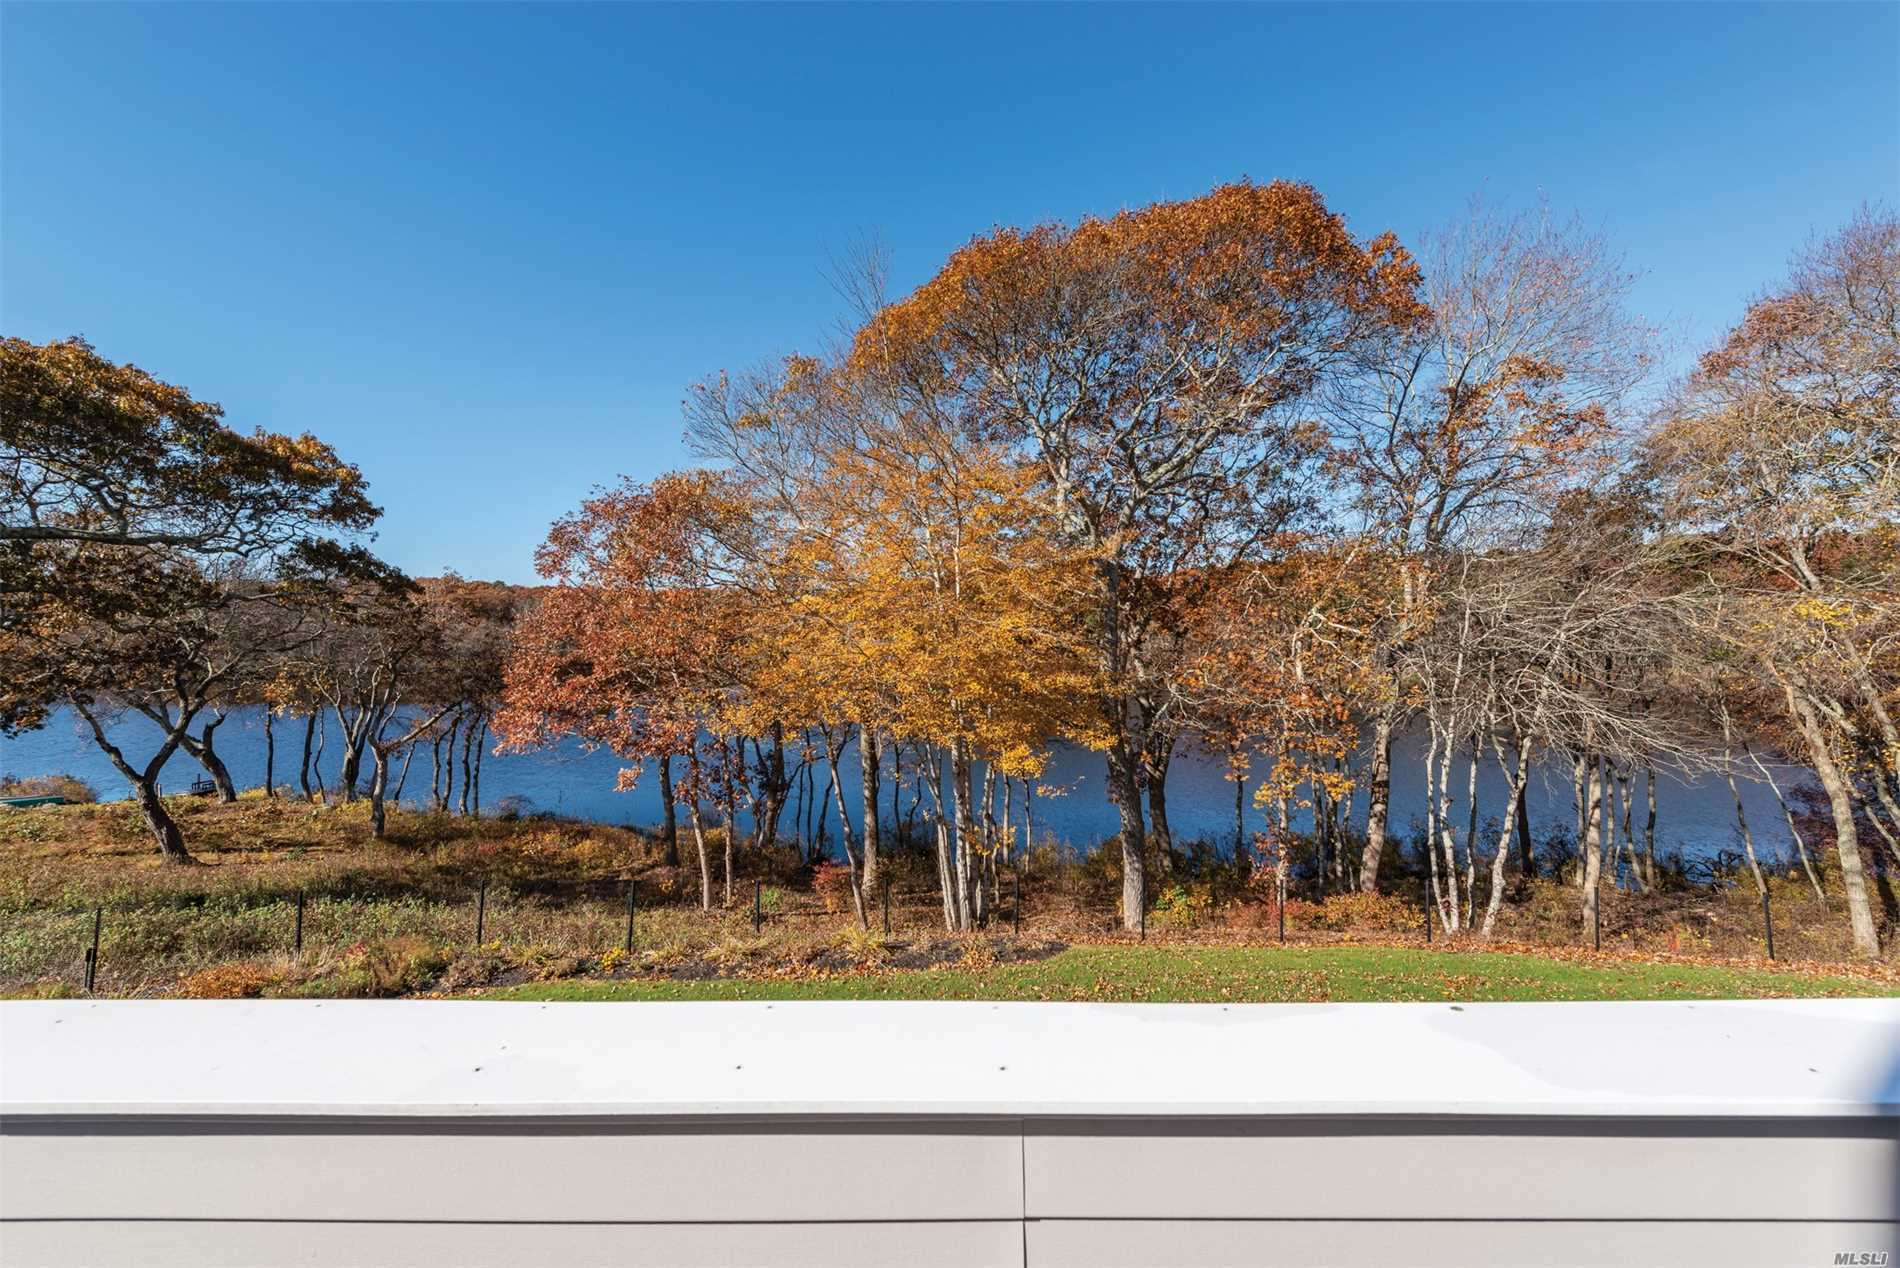 Custom 2 Br Condo In The Lakefront Community Of Beaver Lake. Custom Kitchen, Custom Mouldings Near-End Unit Very Private With Gorgeous West Lake View. Amazing Sunsets. Community Pool. Upper And Lower Decking, Sky Lights, Beach Rights, Short Distance To The Village Of Westhampton Beach.